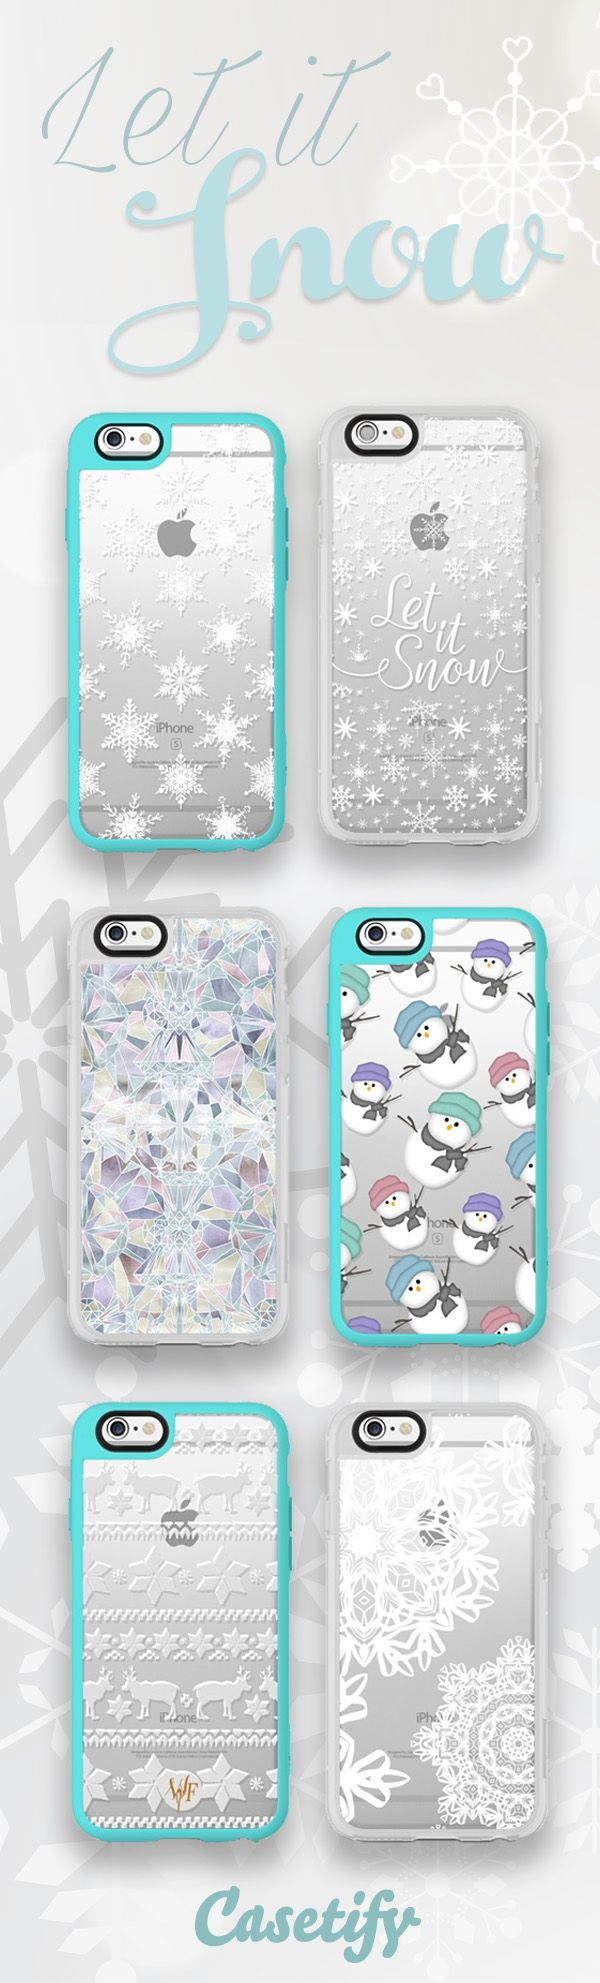 mobile case designs 3